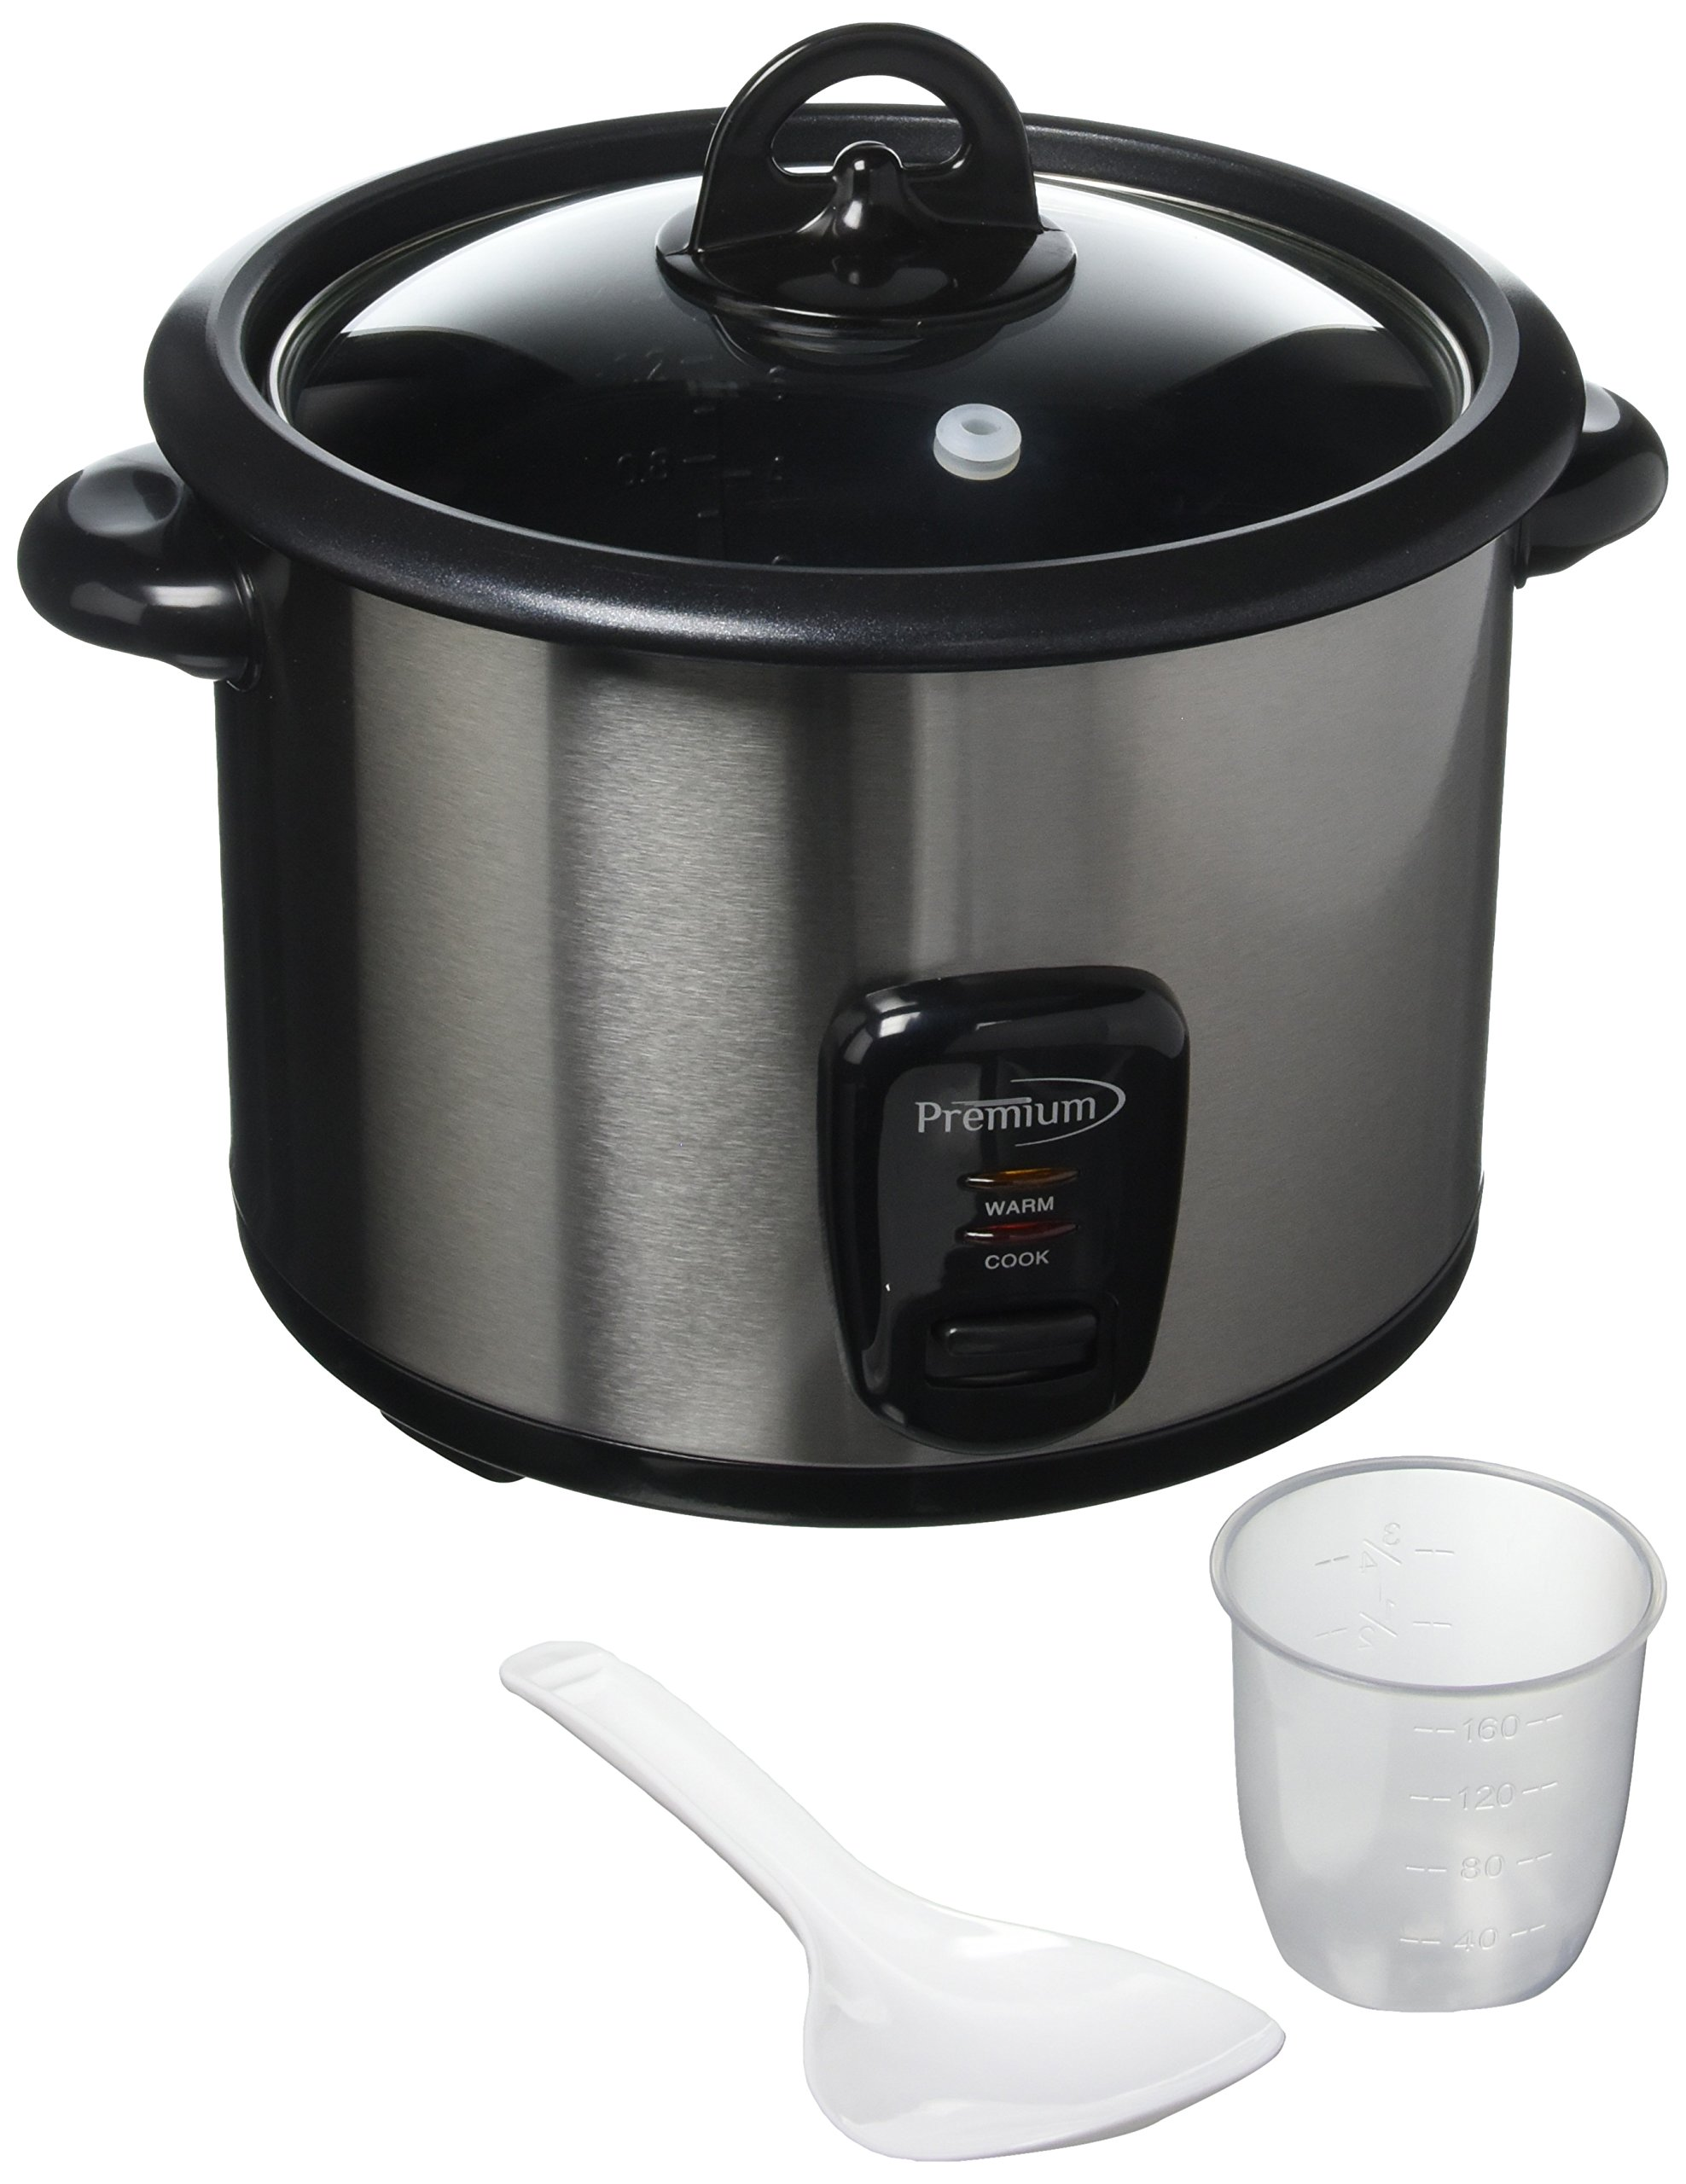 Premium PRC1547 8 Cup Deluxe Rice Cooker, Silver